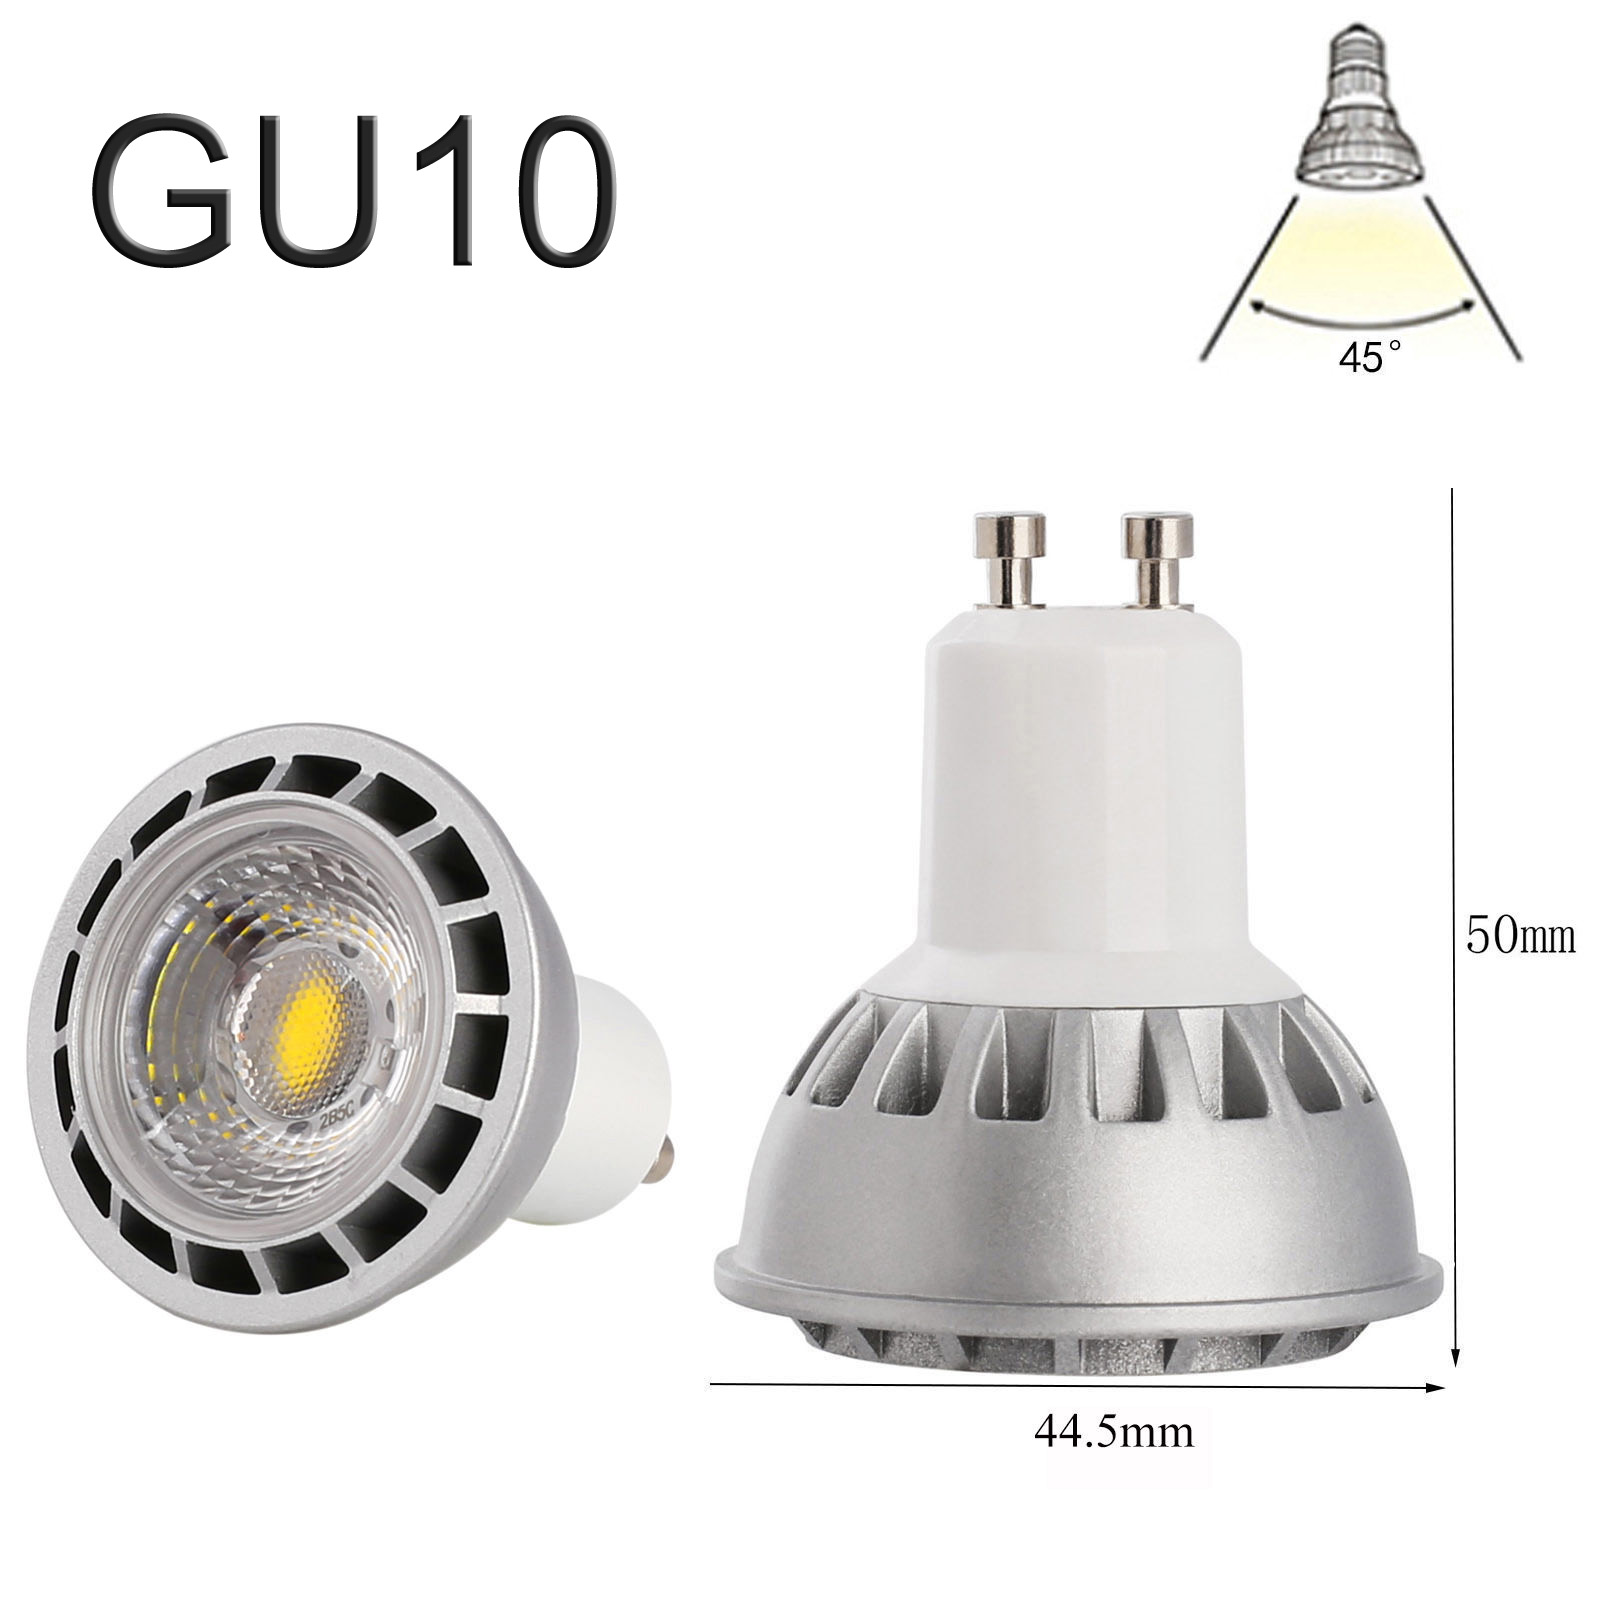 high power 15w e27 gu10 mr16 dimmable led spotlight cob lights bulb cree lamp ebay. Black Bedroom Furniture Sets. Home Design Ideas